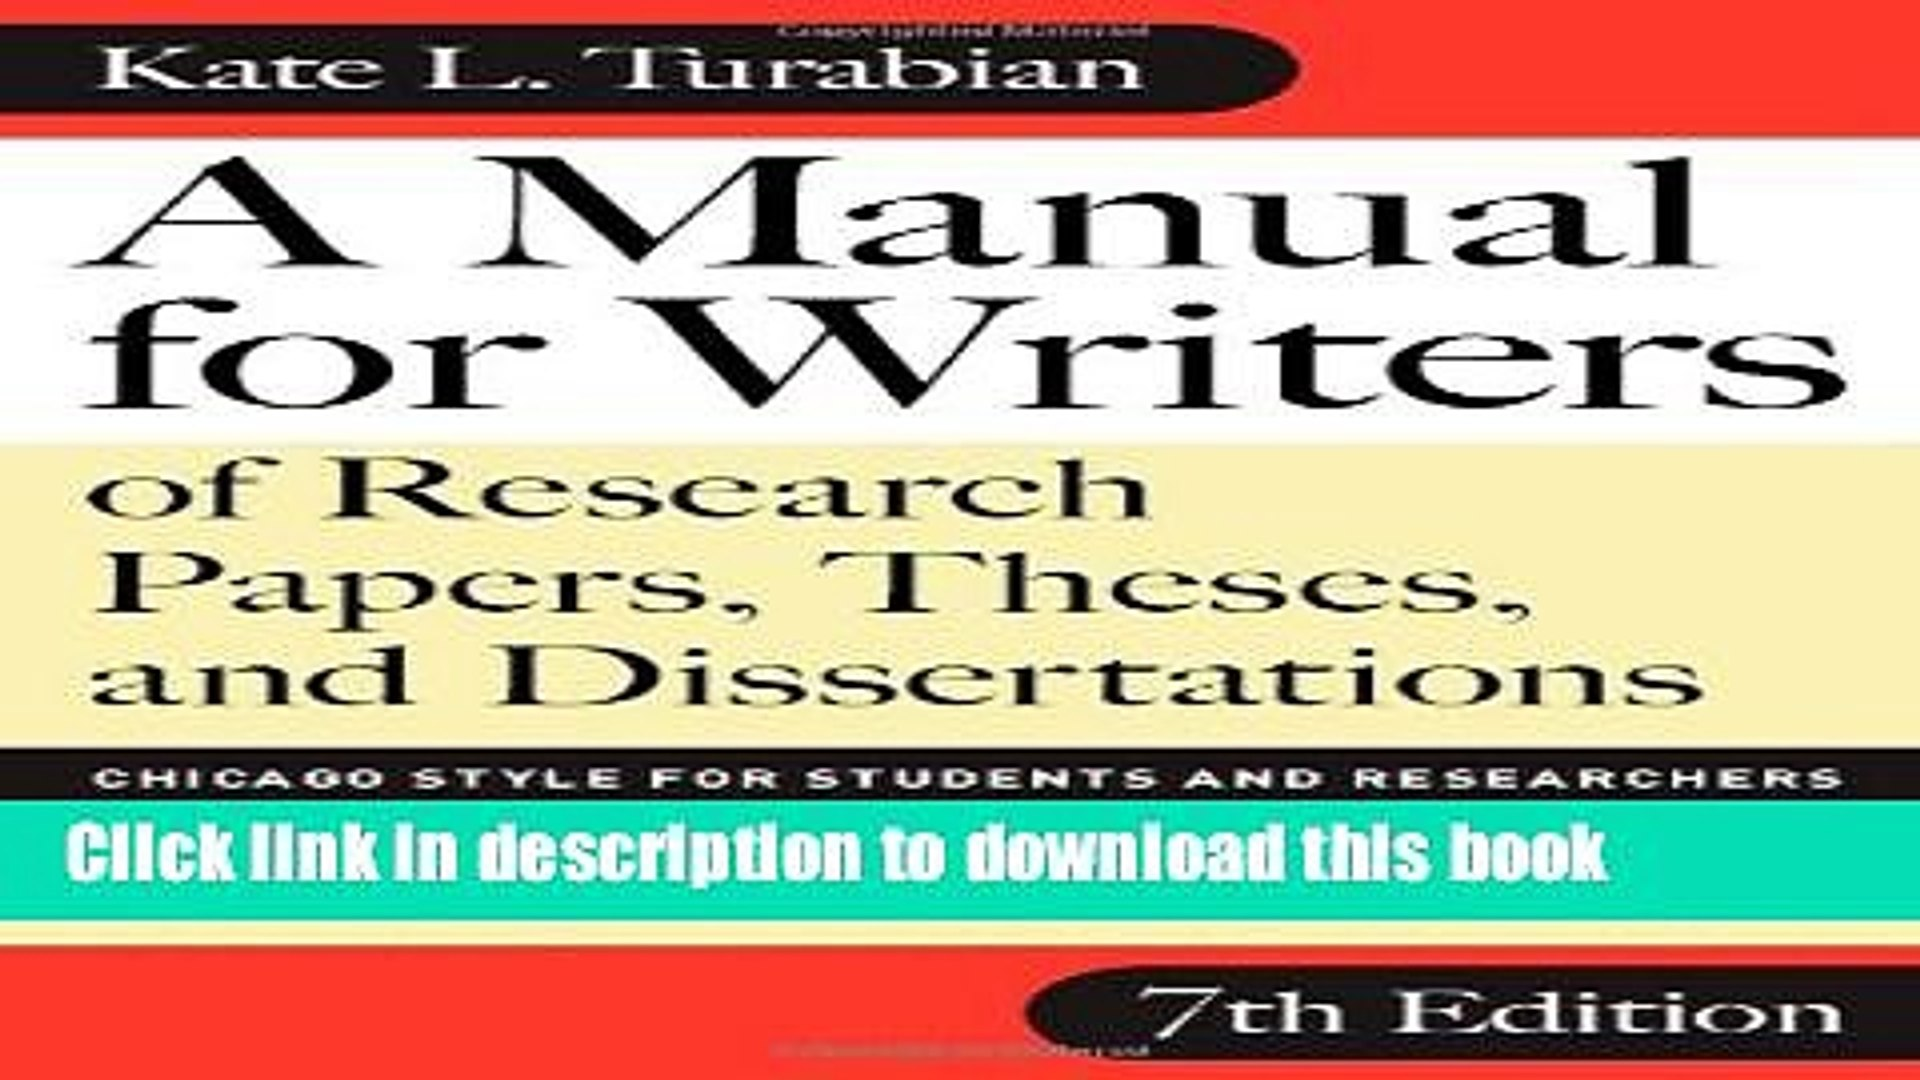 003 Research Paper Manual For Writers Of Papers Theses And Dissertations 7th Edition X1080 Sensational A Full